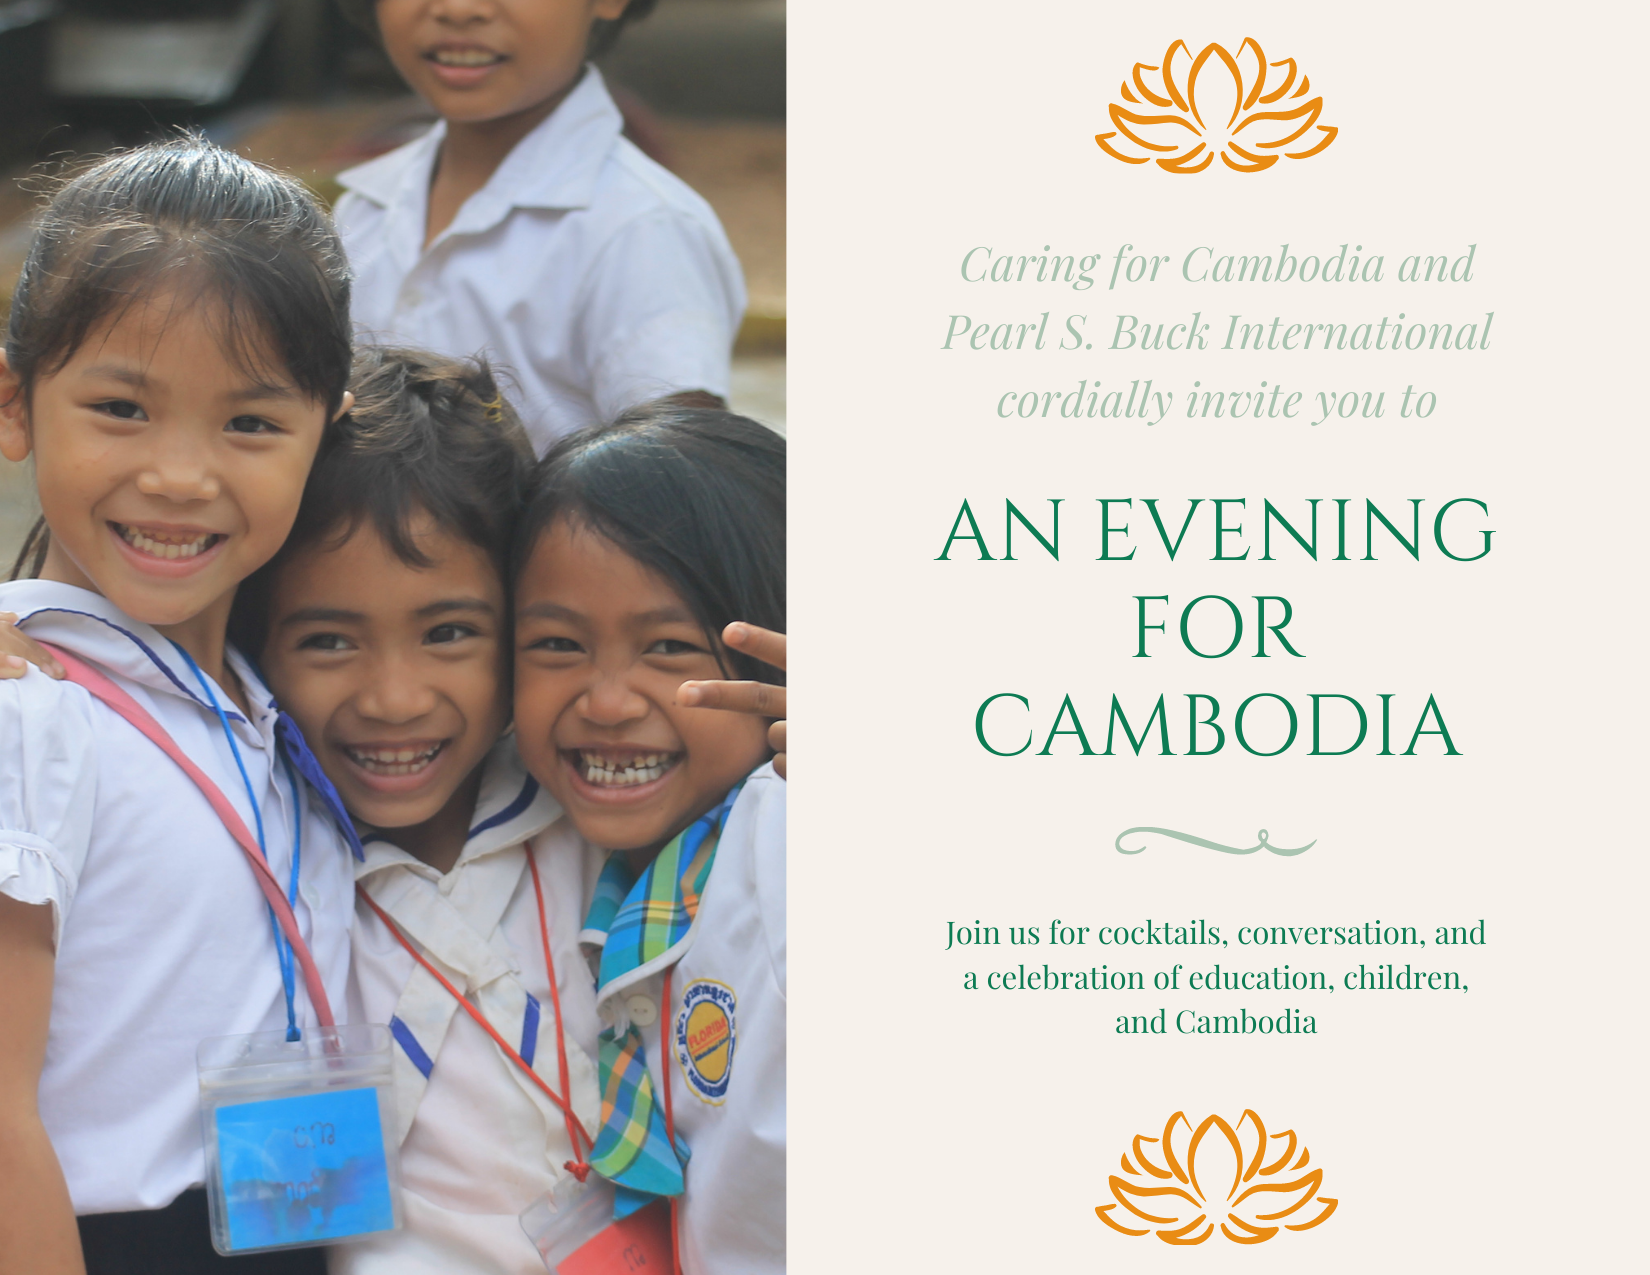 An Evening for Cambodia